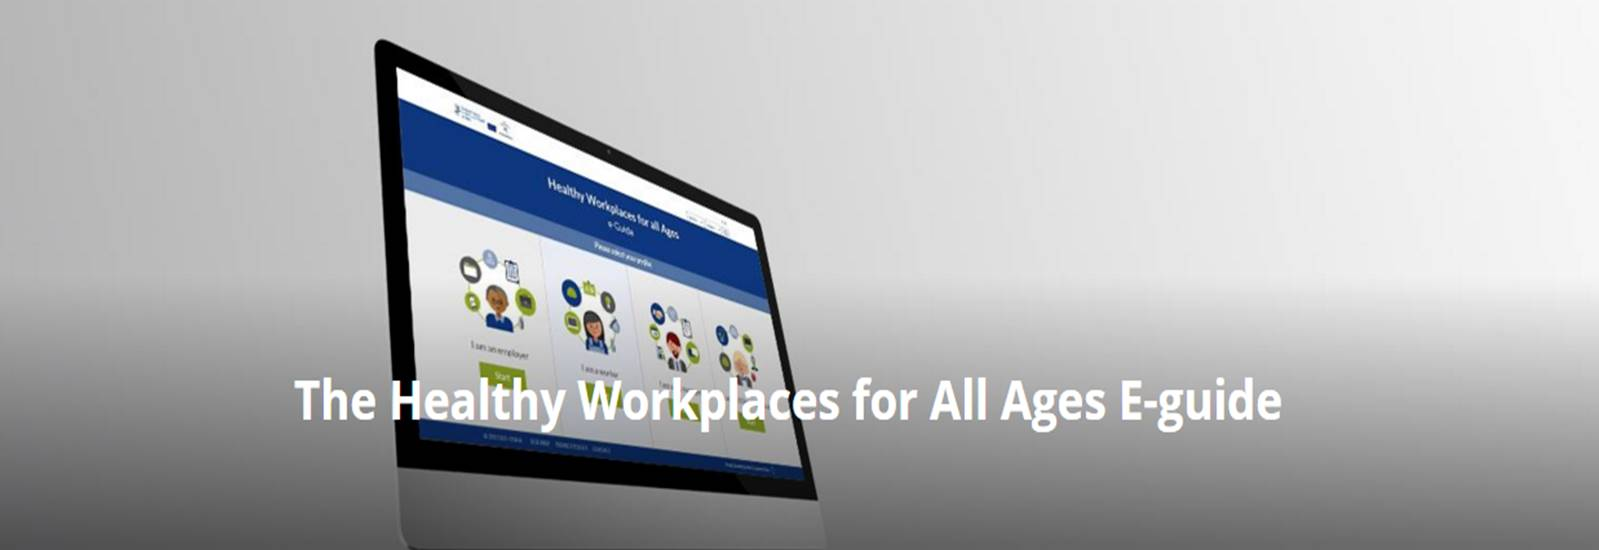 healthy workplaces for all ages eguide